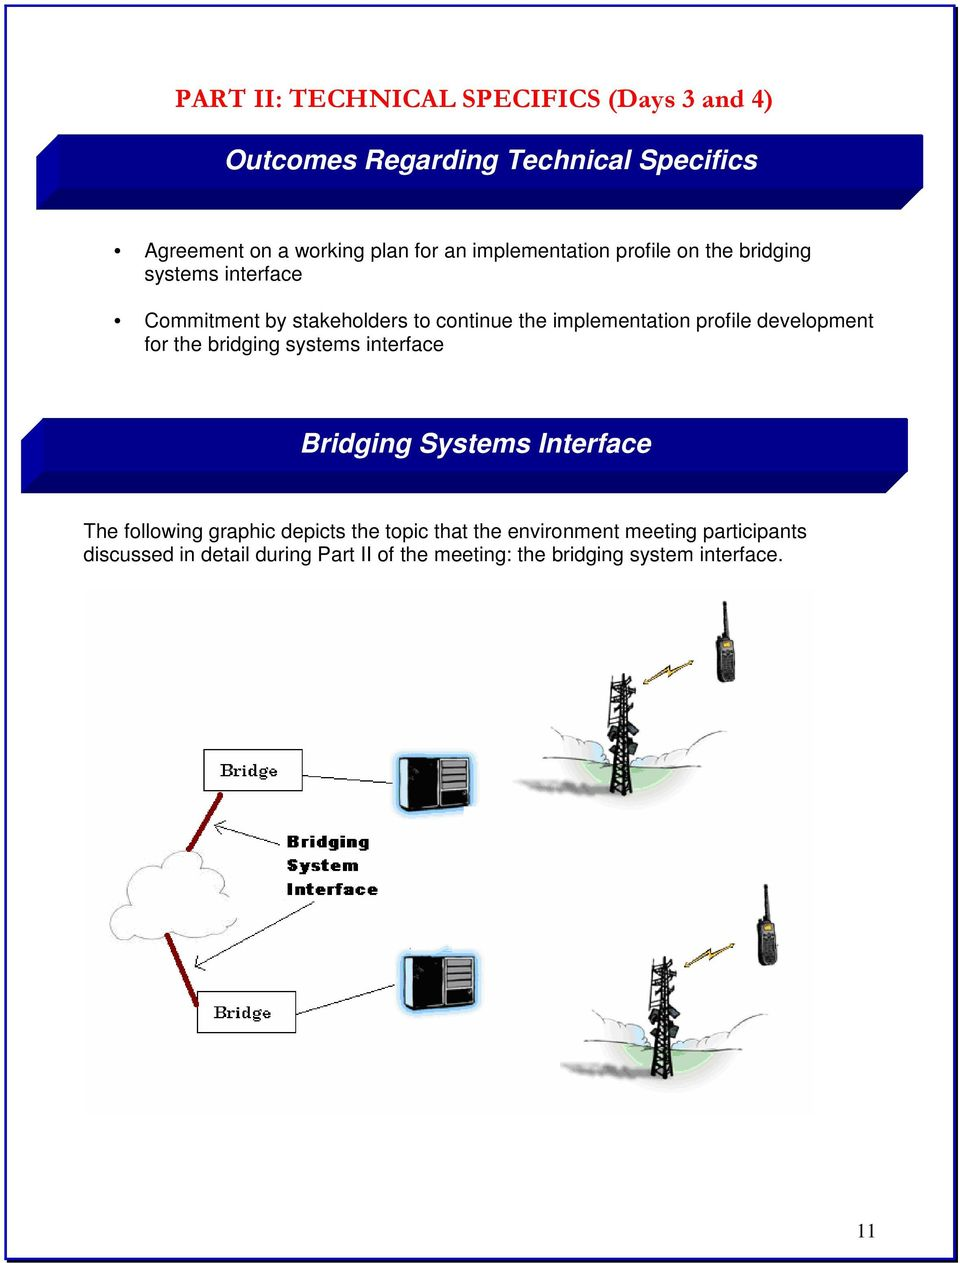 profile development for the bridging systems interface Bridging Systems Interface The following graphic depicts the